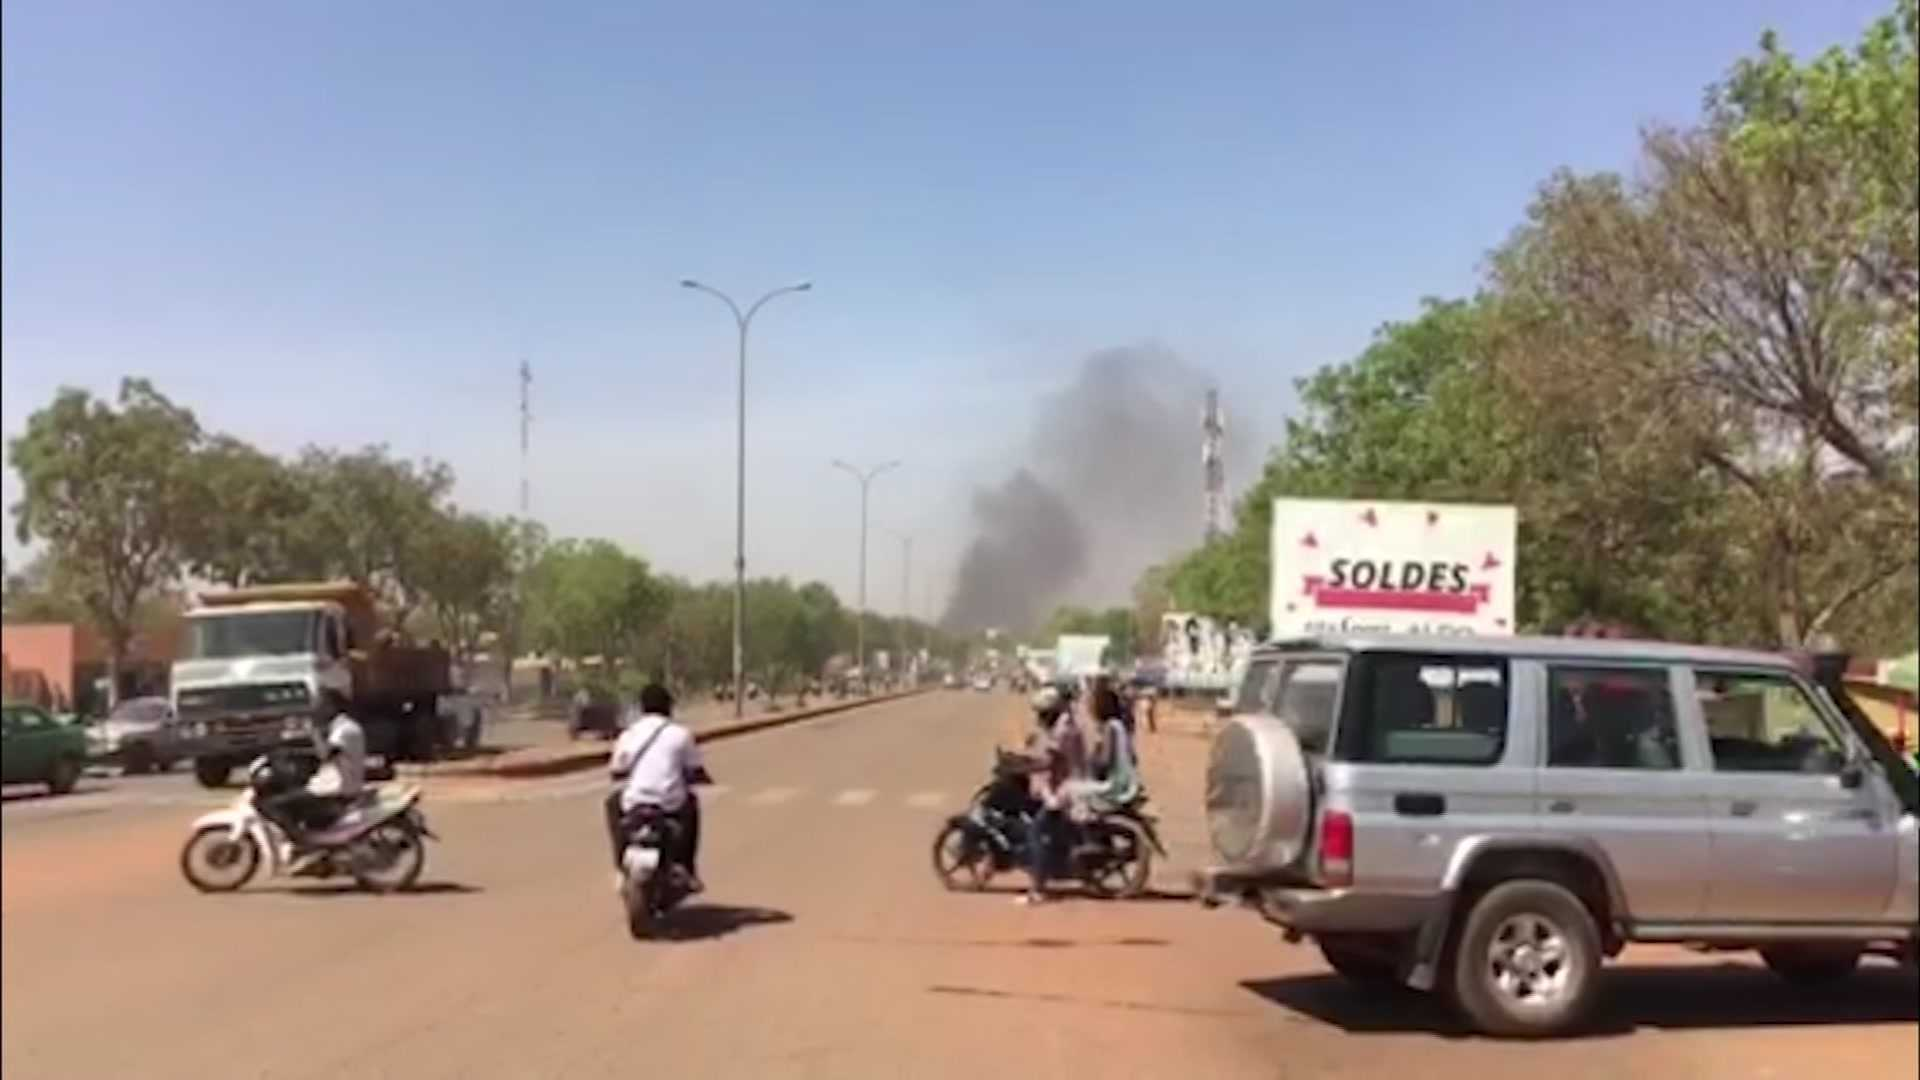 Smoke rises in the background in Ouagadougou, Burkina Faso in this image taken from video Friday March 2, 2018.